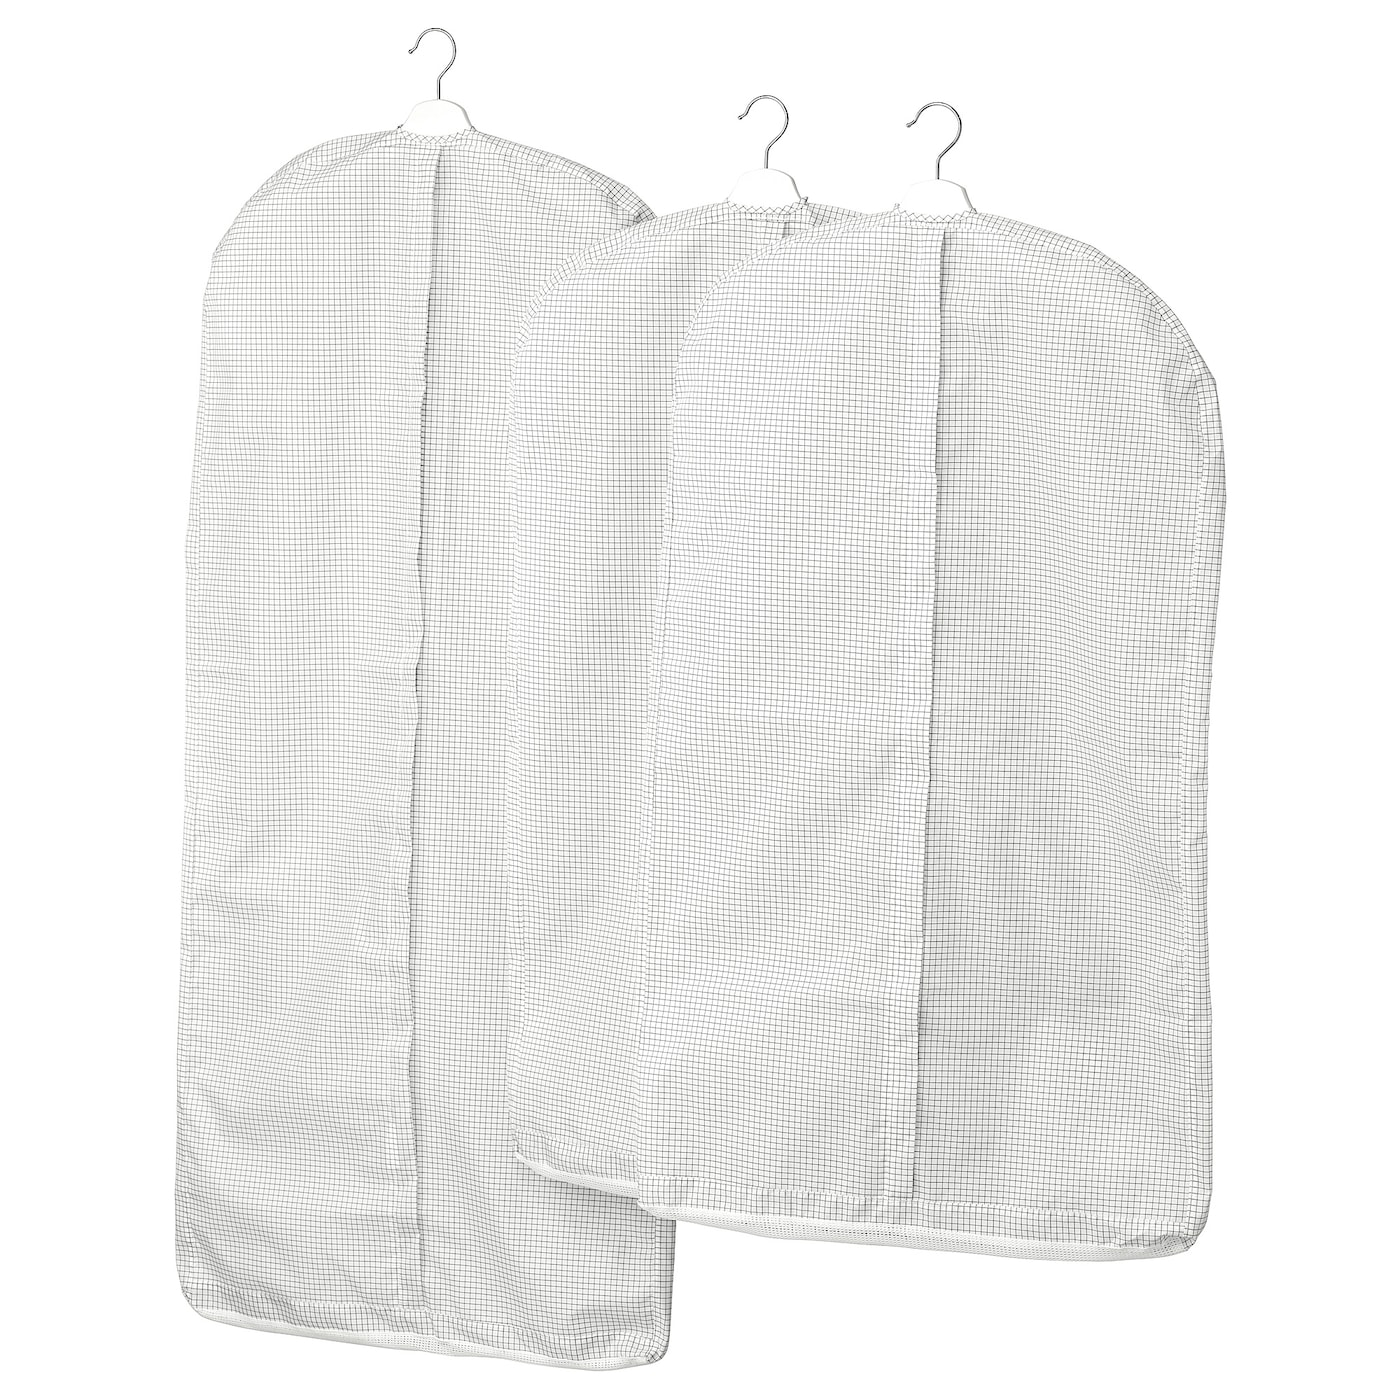 IKEA STUK clothes cover, set of 3 Protects your clothes from dust.